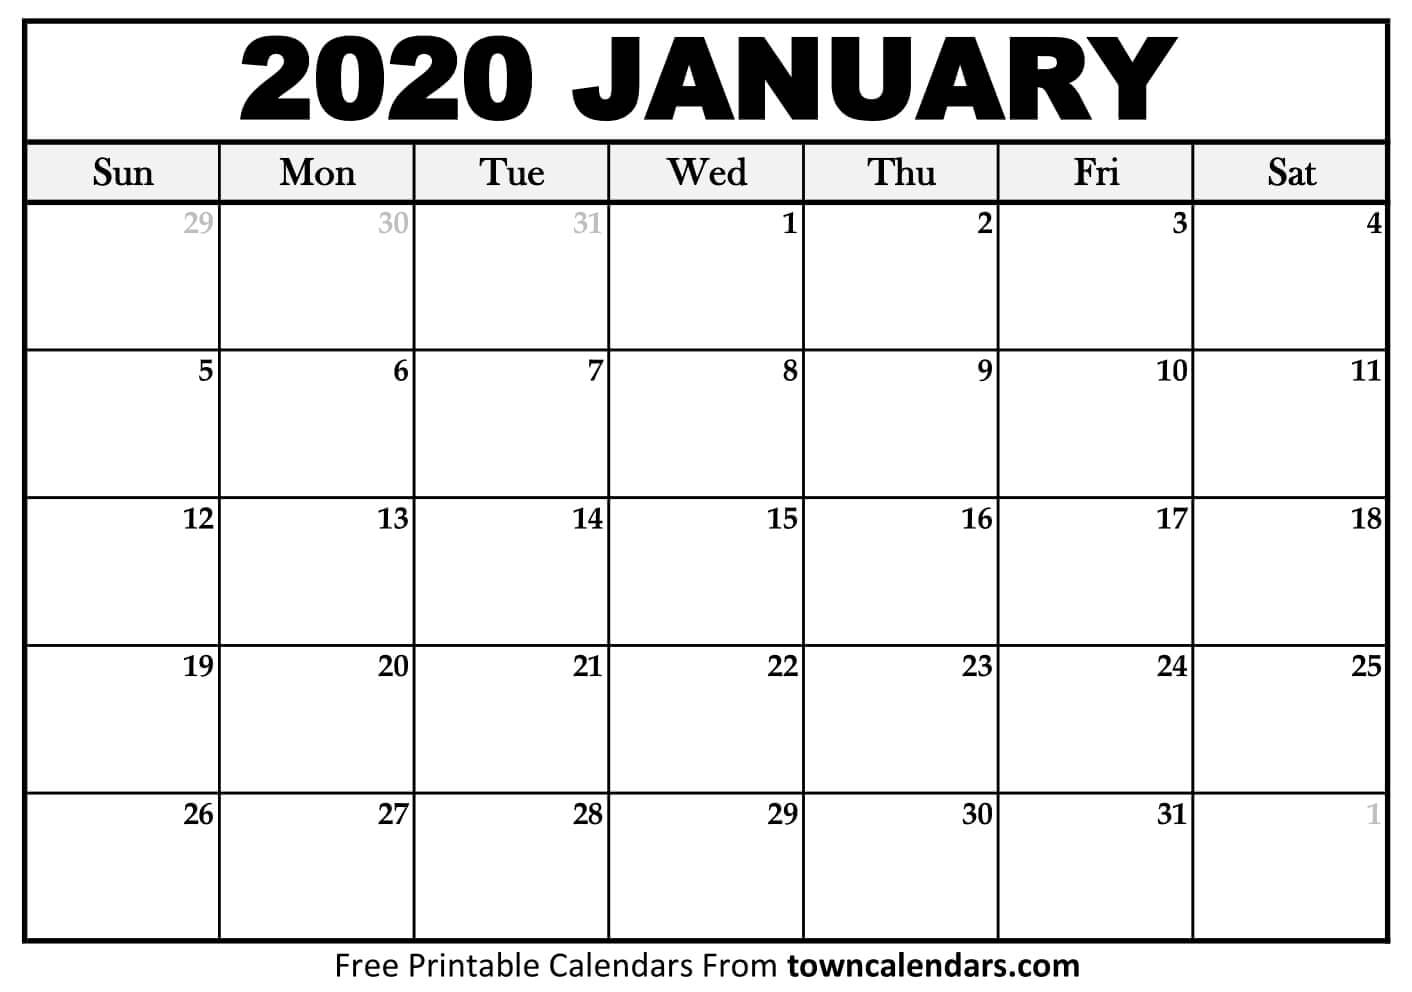 Printable January 2020 Calendar  Towncalendars regarding Calendar 2020 January